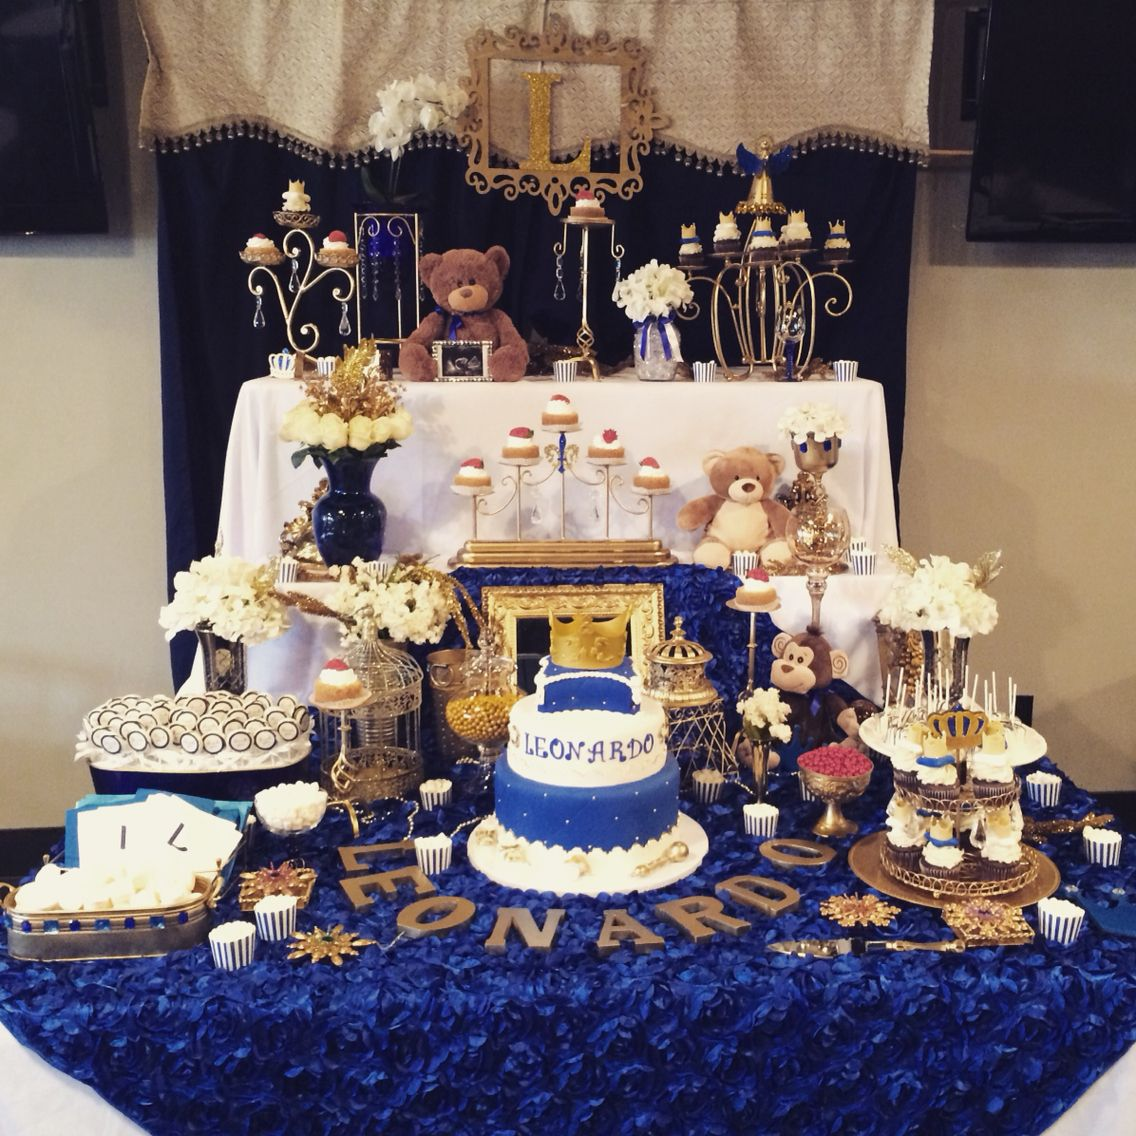 Royal Theme Baby Shower. Prince Cake With Crown. Royal